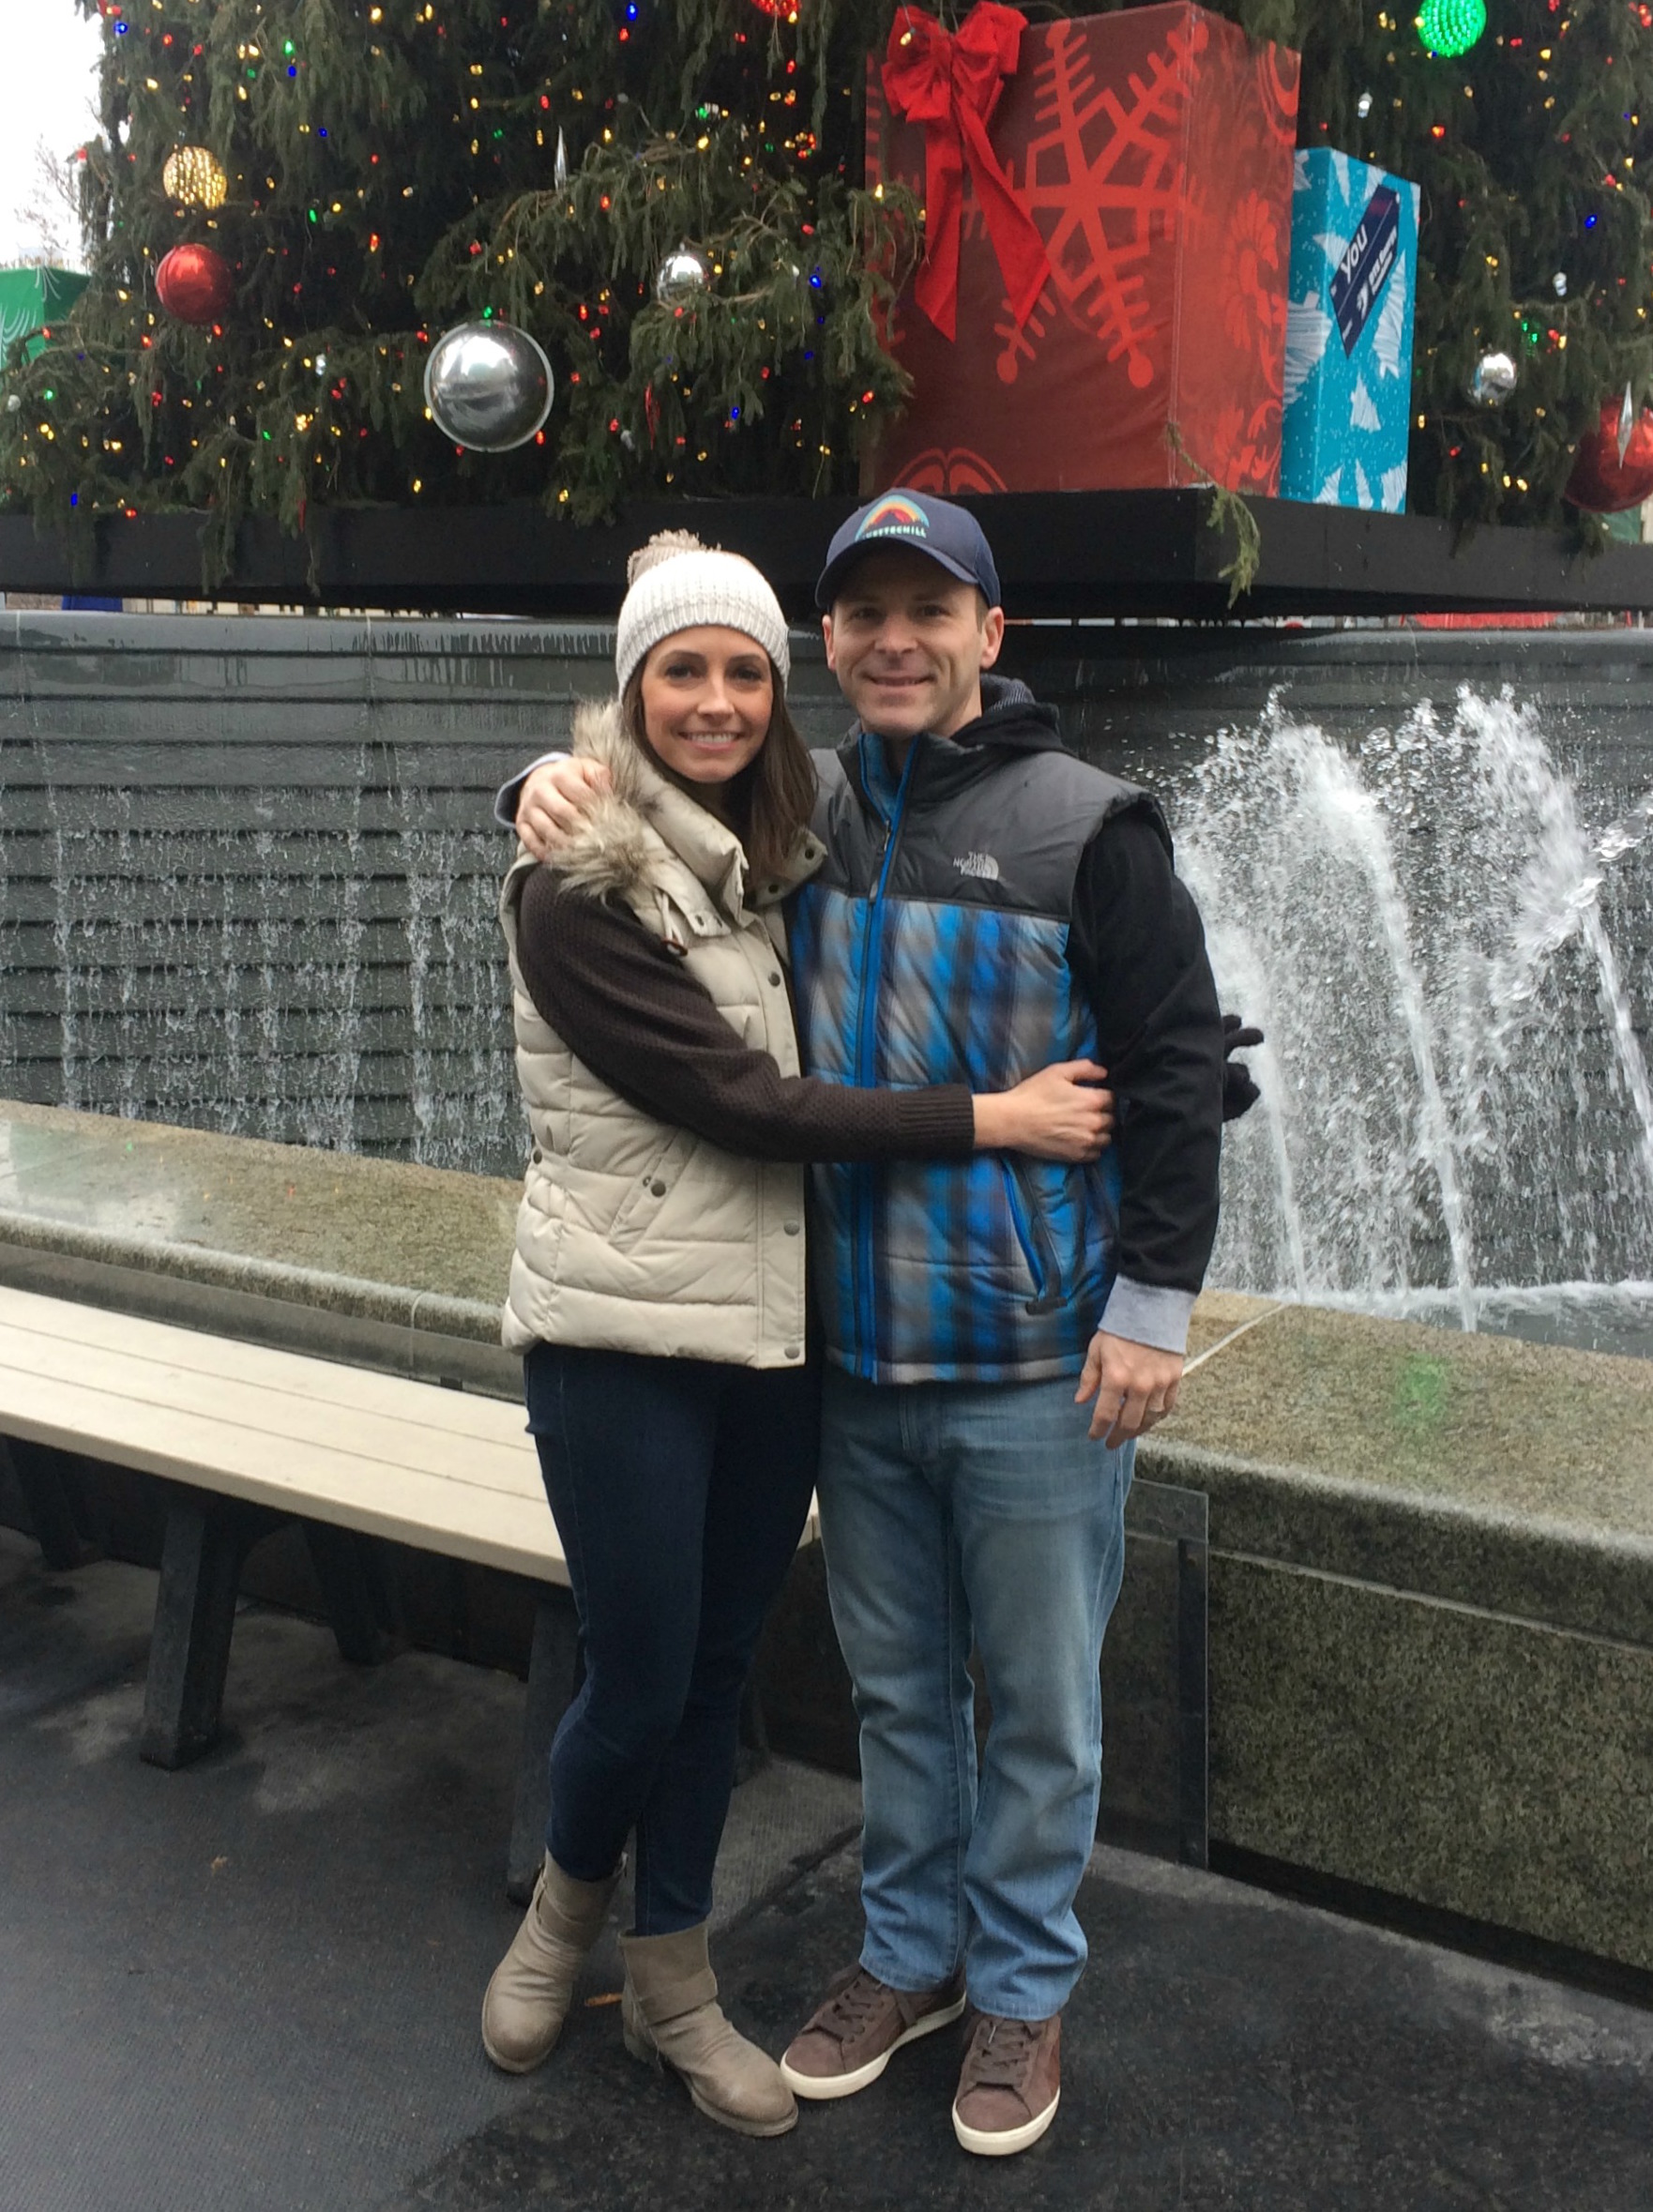 Scott and I at Thanksgiving Day Parade